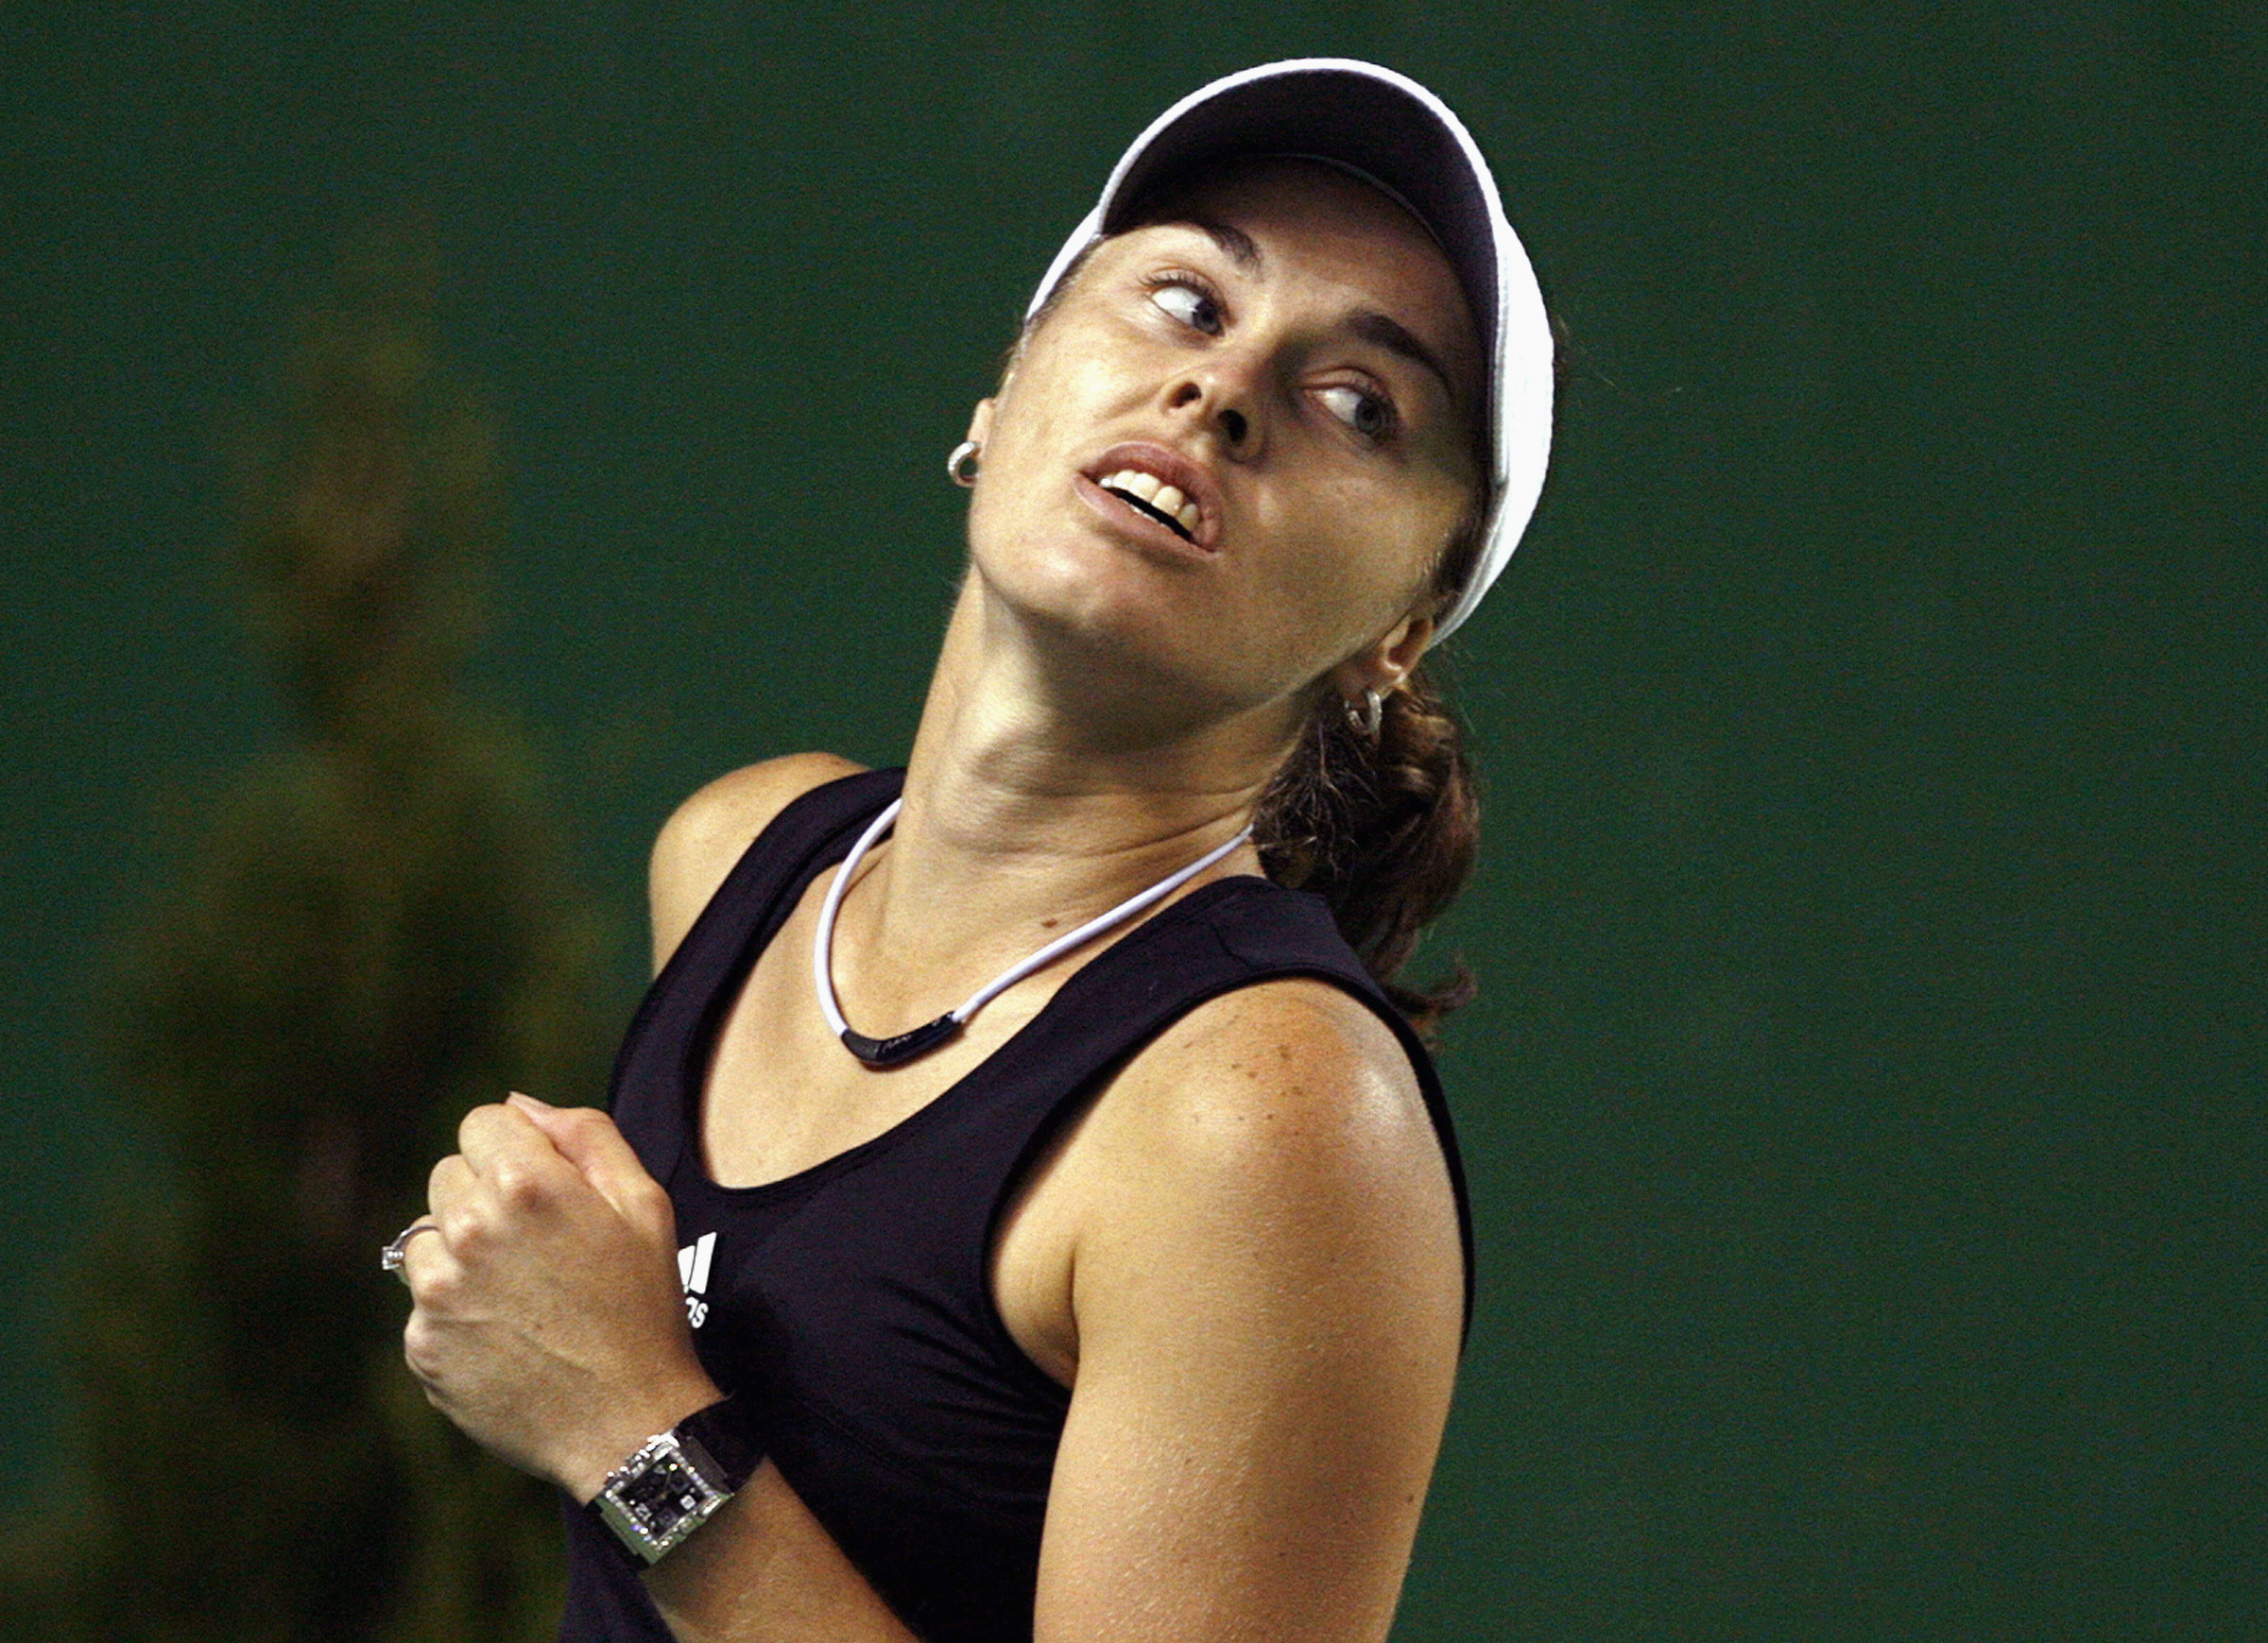 Martina Hingis Makes A Second Return To Tennis By Winning Her